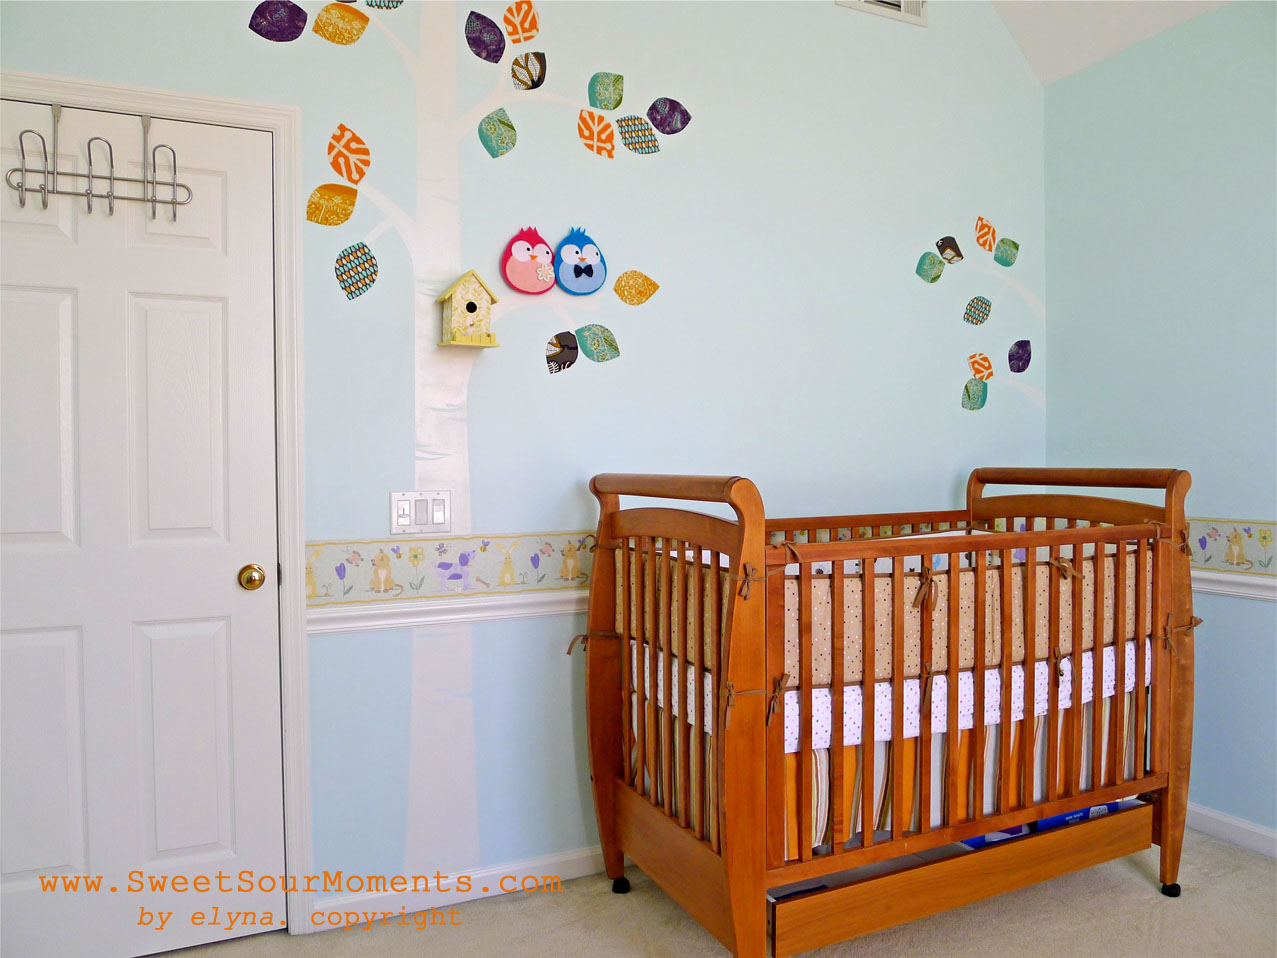 Wall Sconces Baby Nursery : Baby Nursery part 1: Wall Mural DIY SweetSourMoments